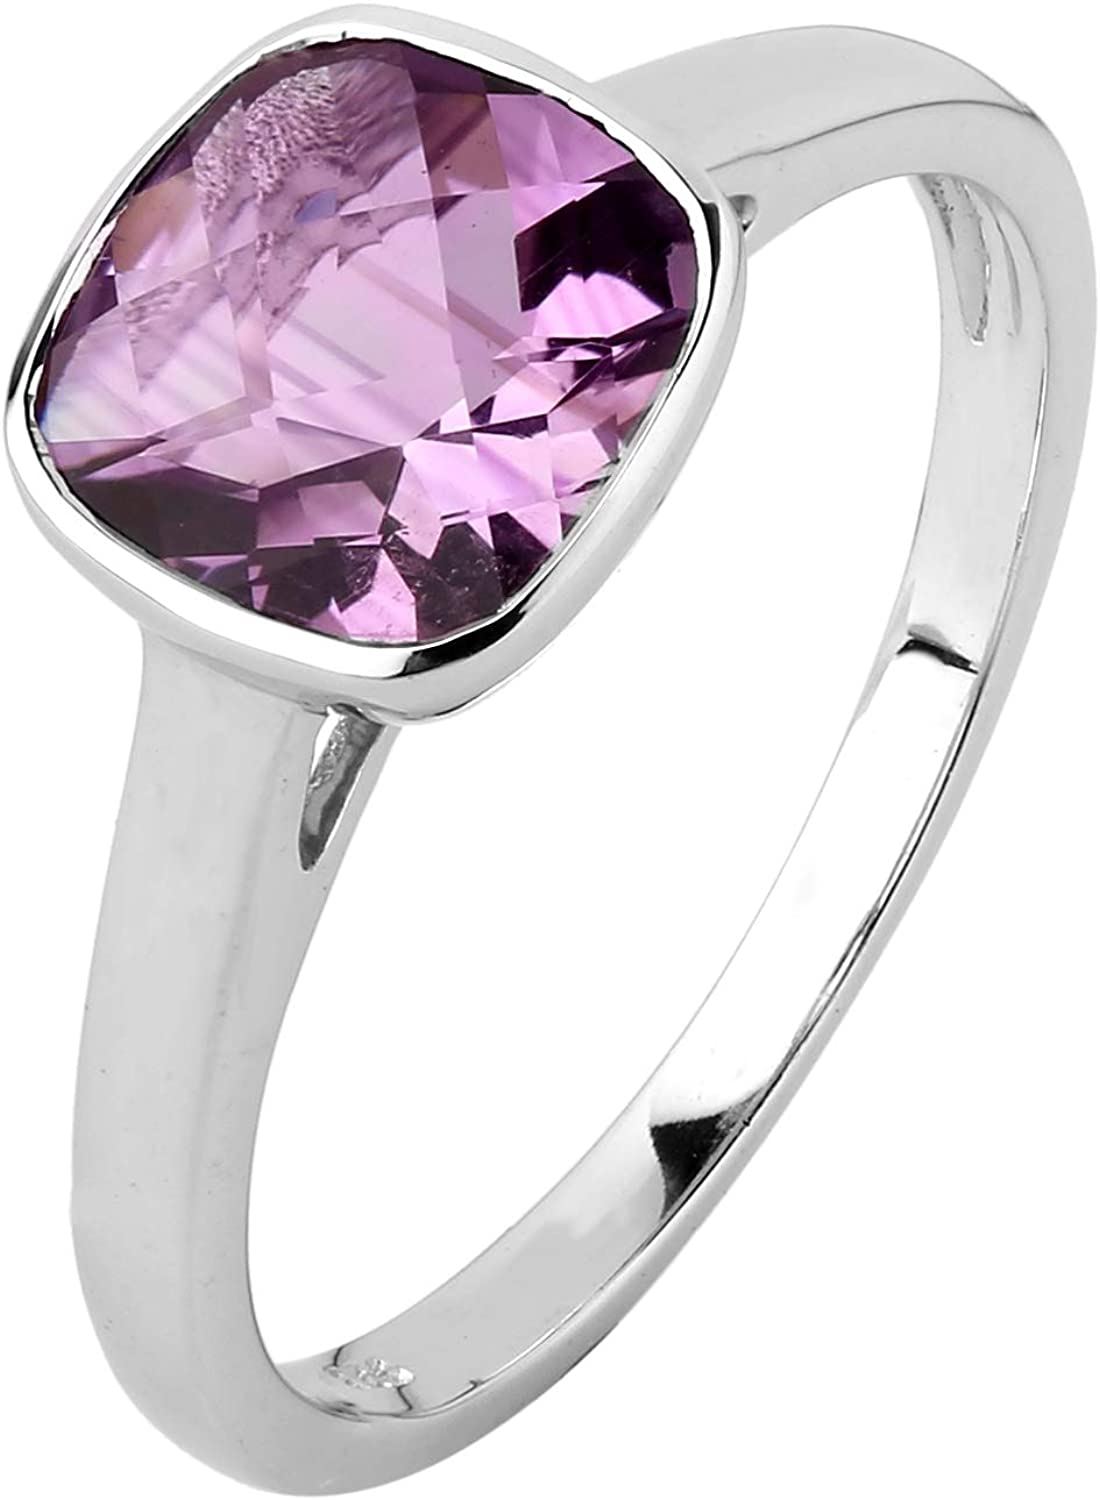 Gemsonclick Natural Purple Amethyst Ring Oval Cut Silver Purple Birthstone Handcrafted Ring Sizes 4-13